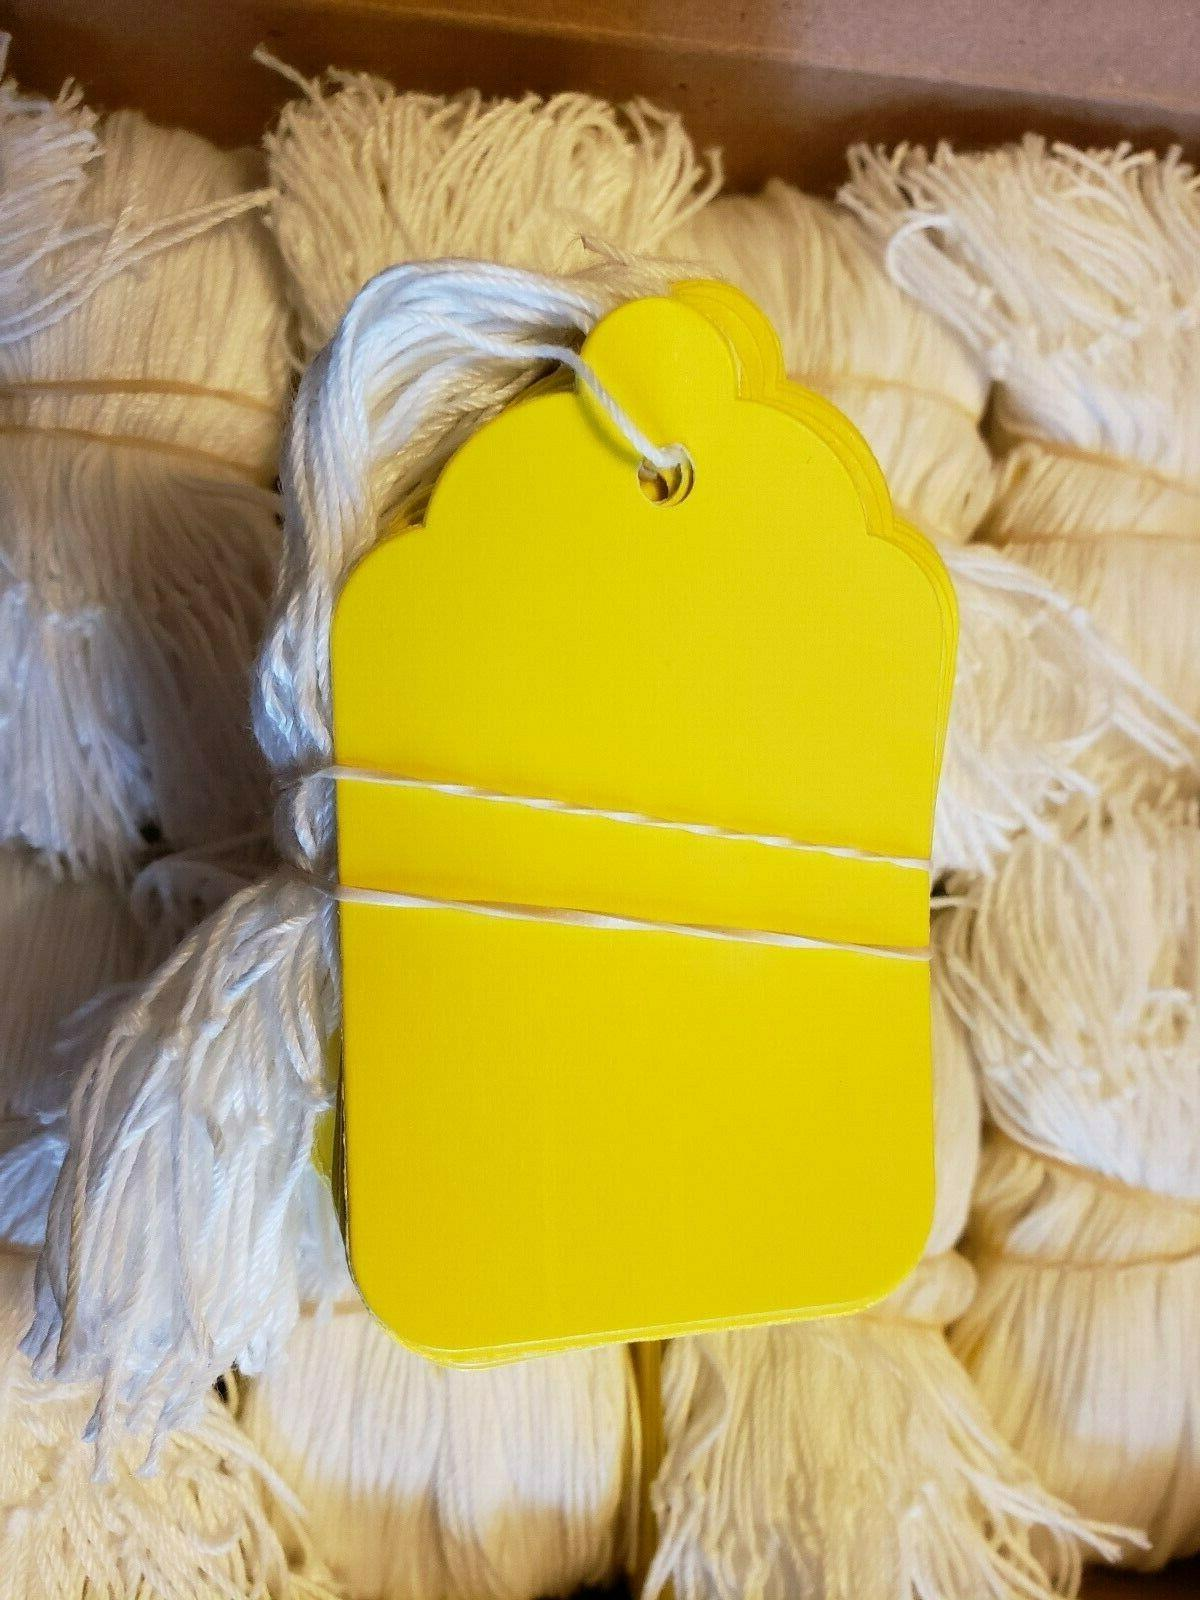 100 blank yellow strung merchandise price tags